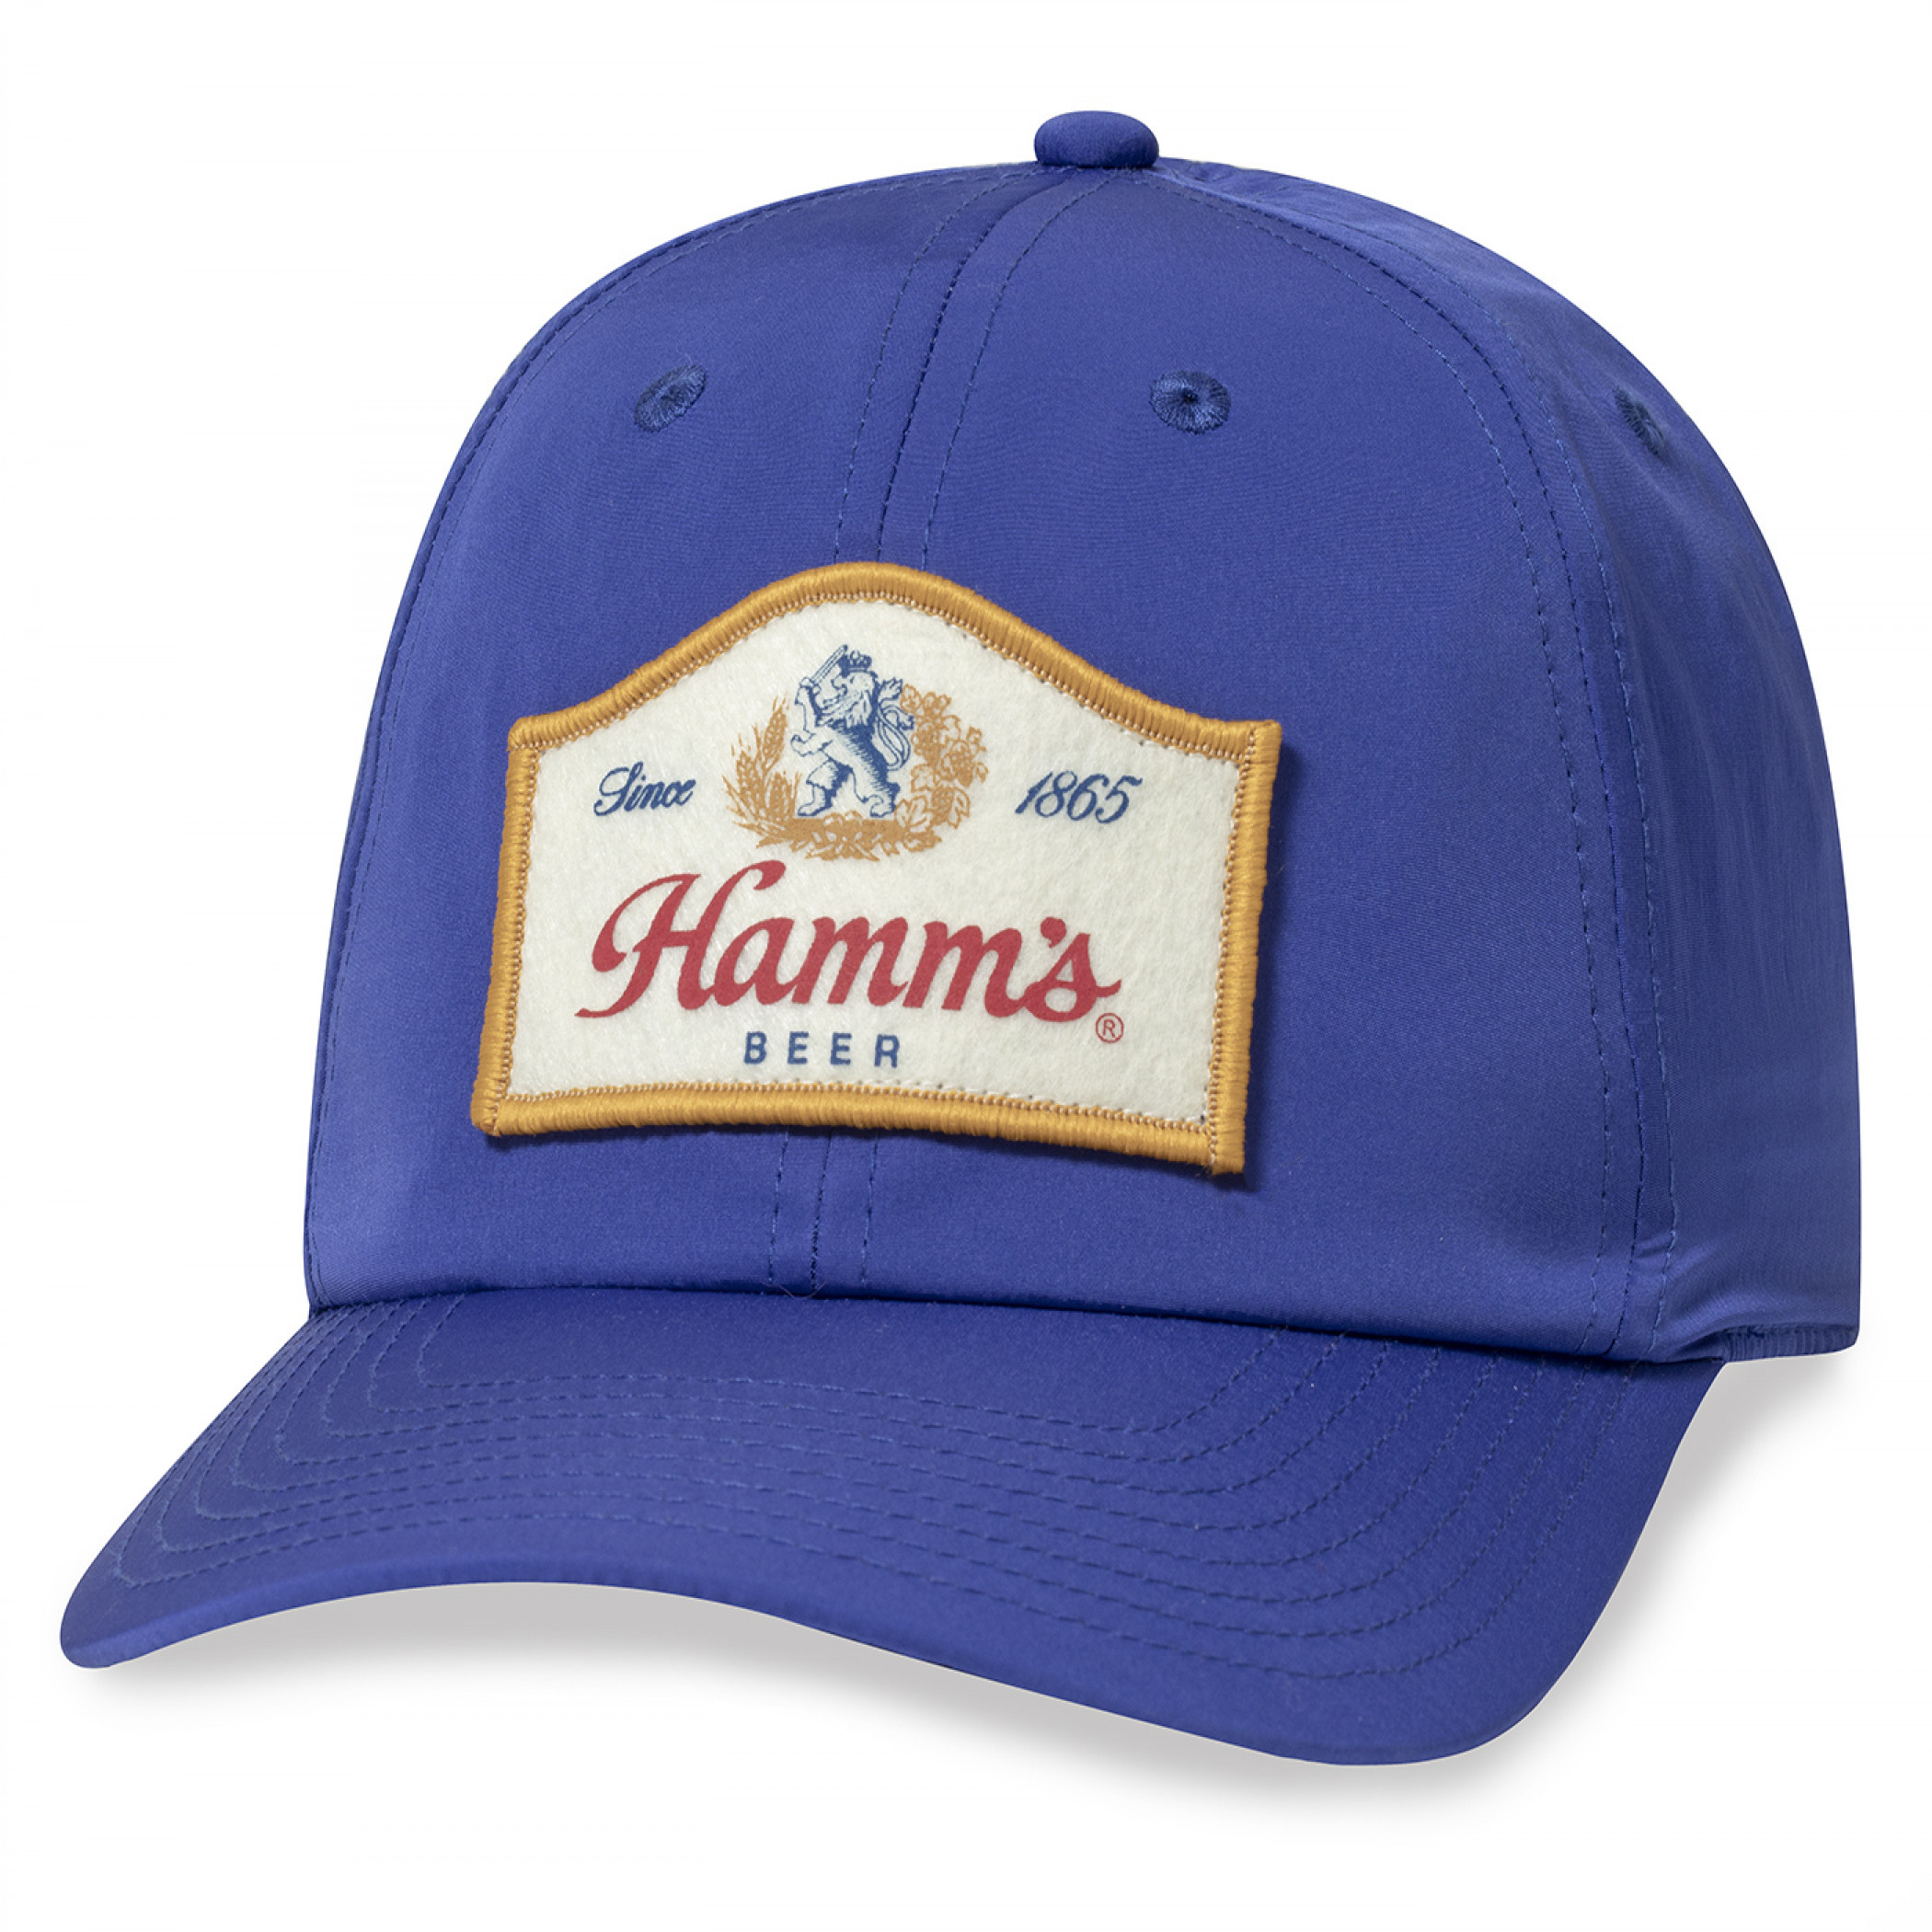 Hamm's Beer Since 1865 Patch Hat